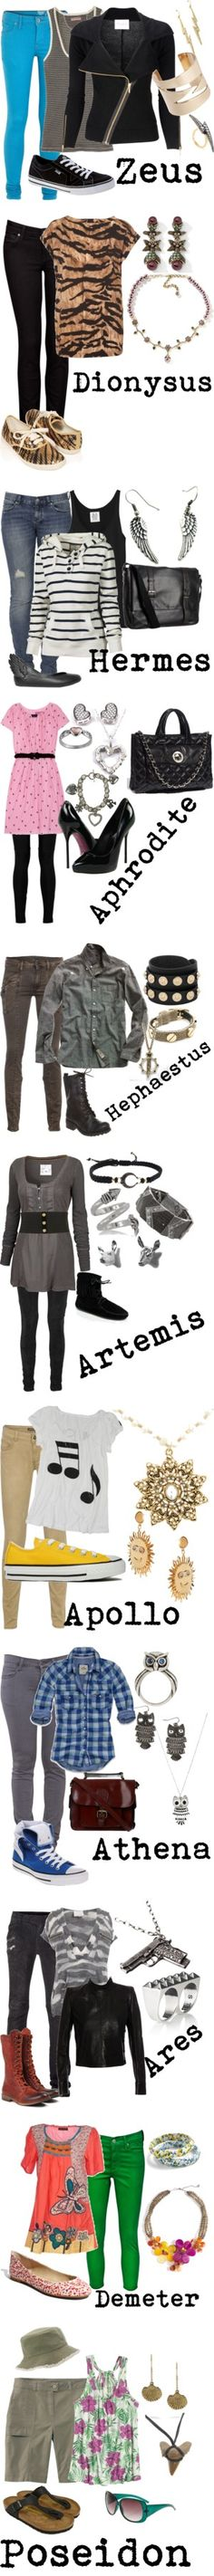 """Inspired by Percy Jackson"" by achtungemilie ❤ liked on Polyvore"